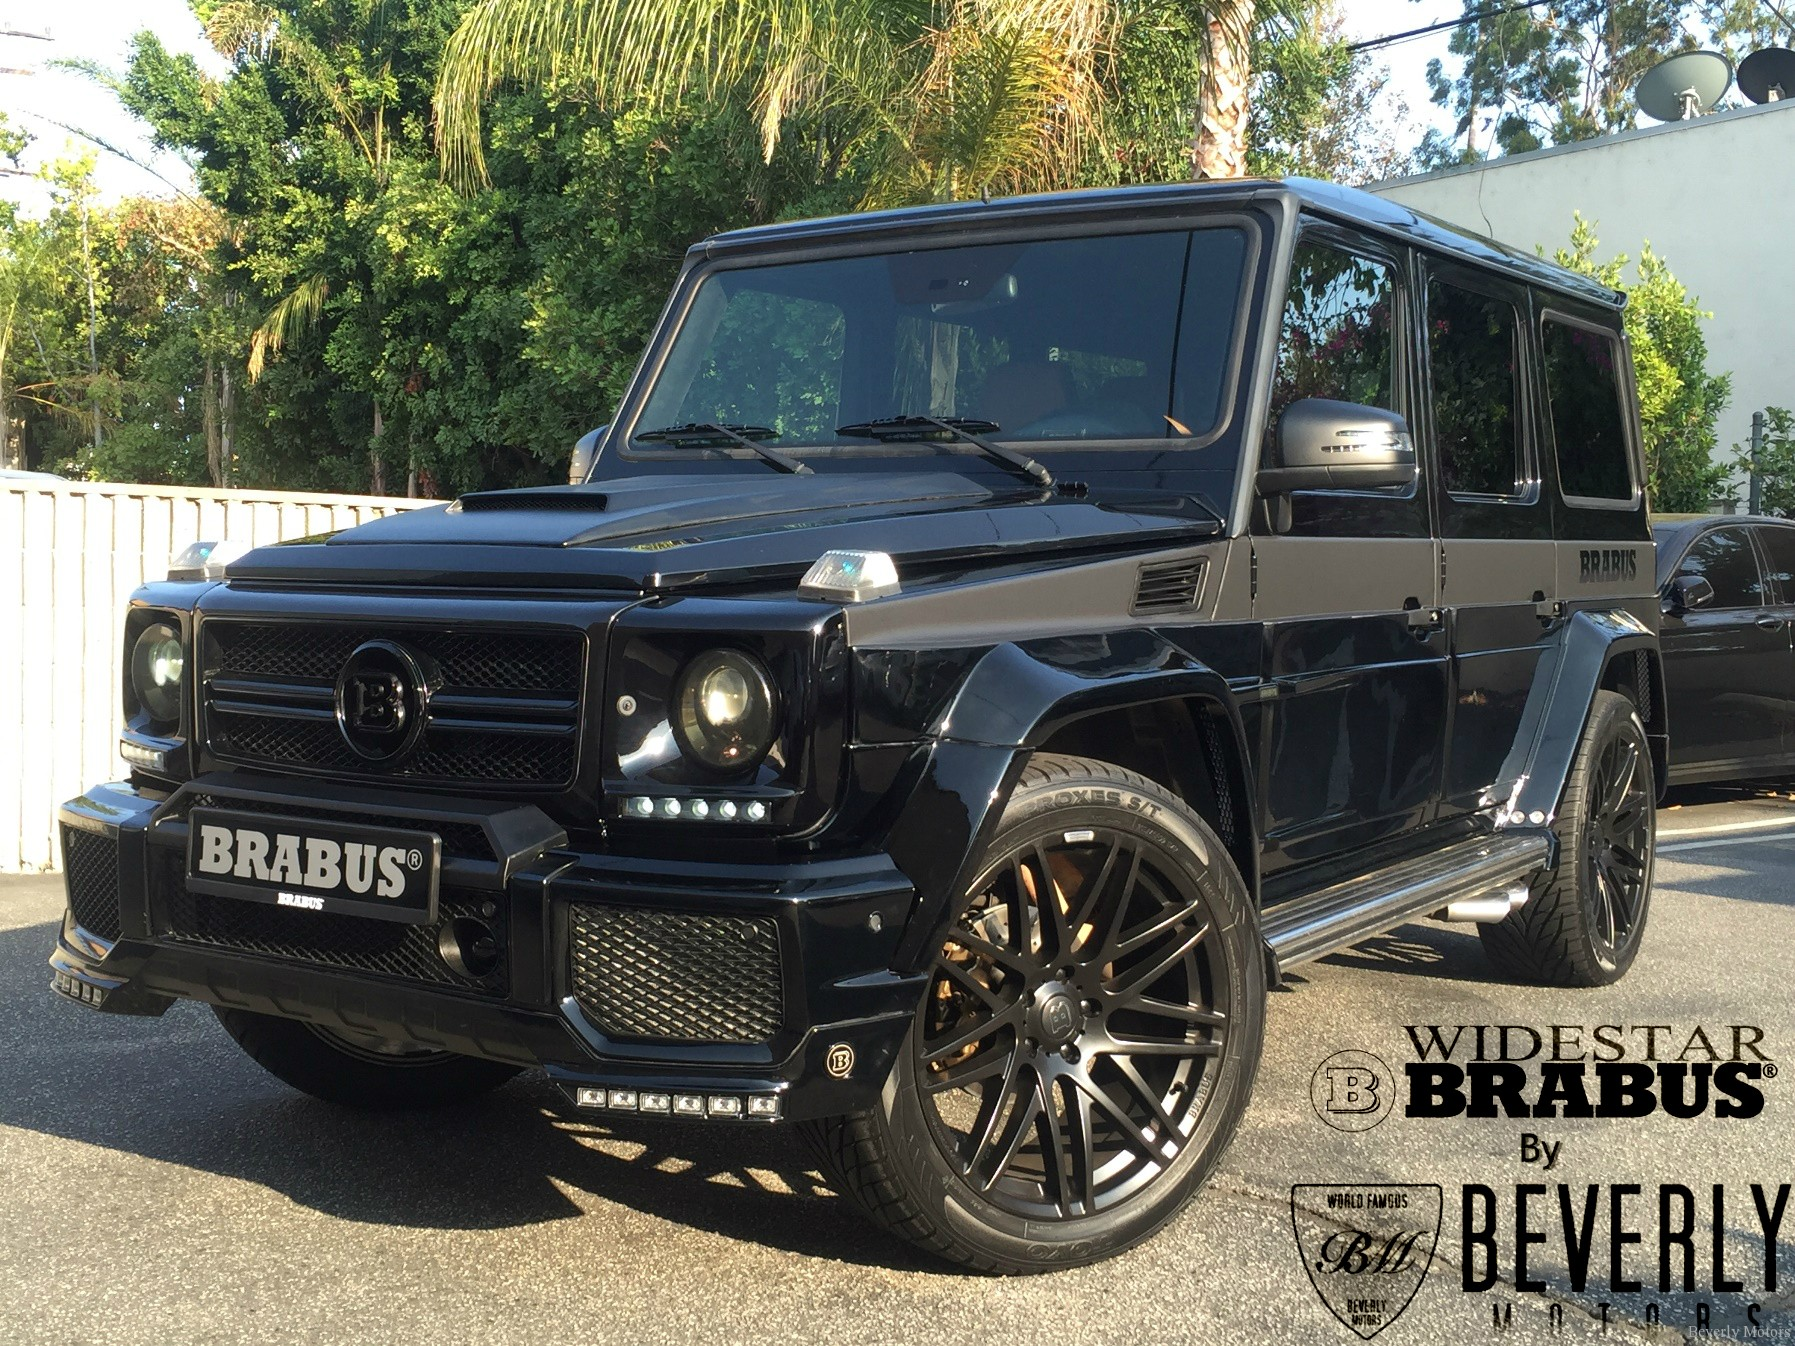 2004 mercedes benz g55 amg brabus widestar edition for Mercedes benz g class amg for sale